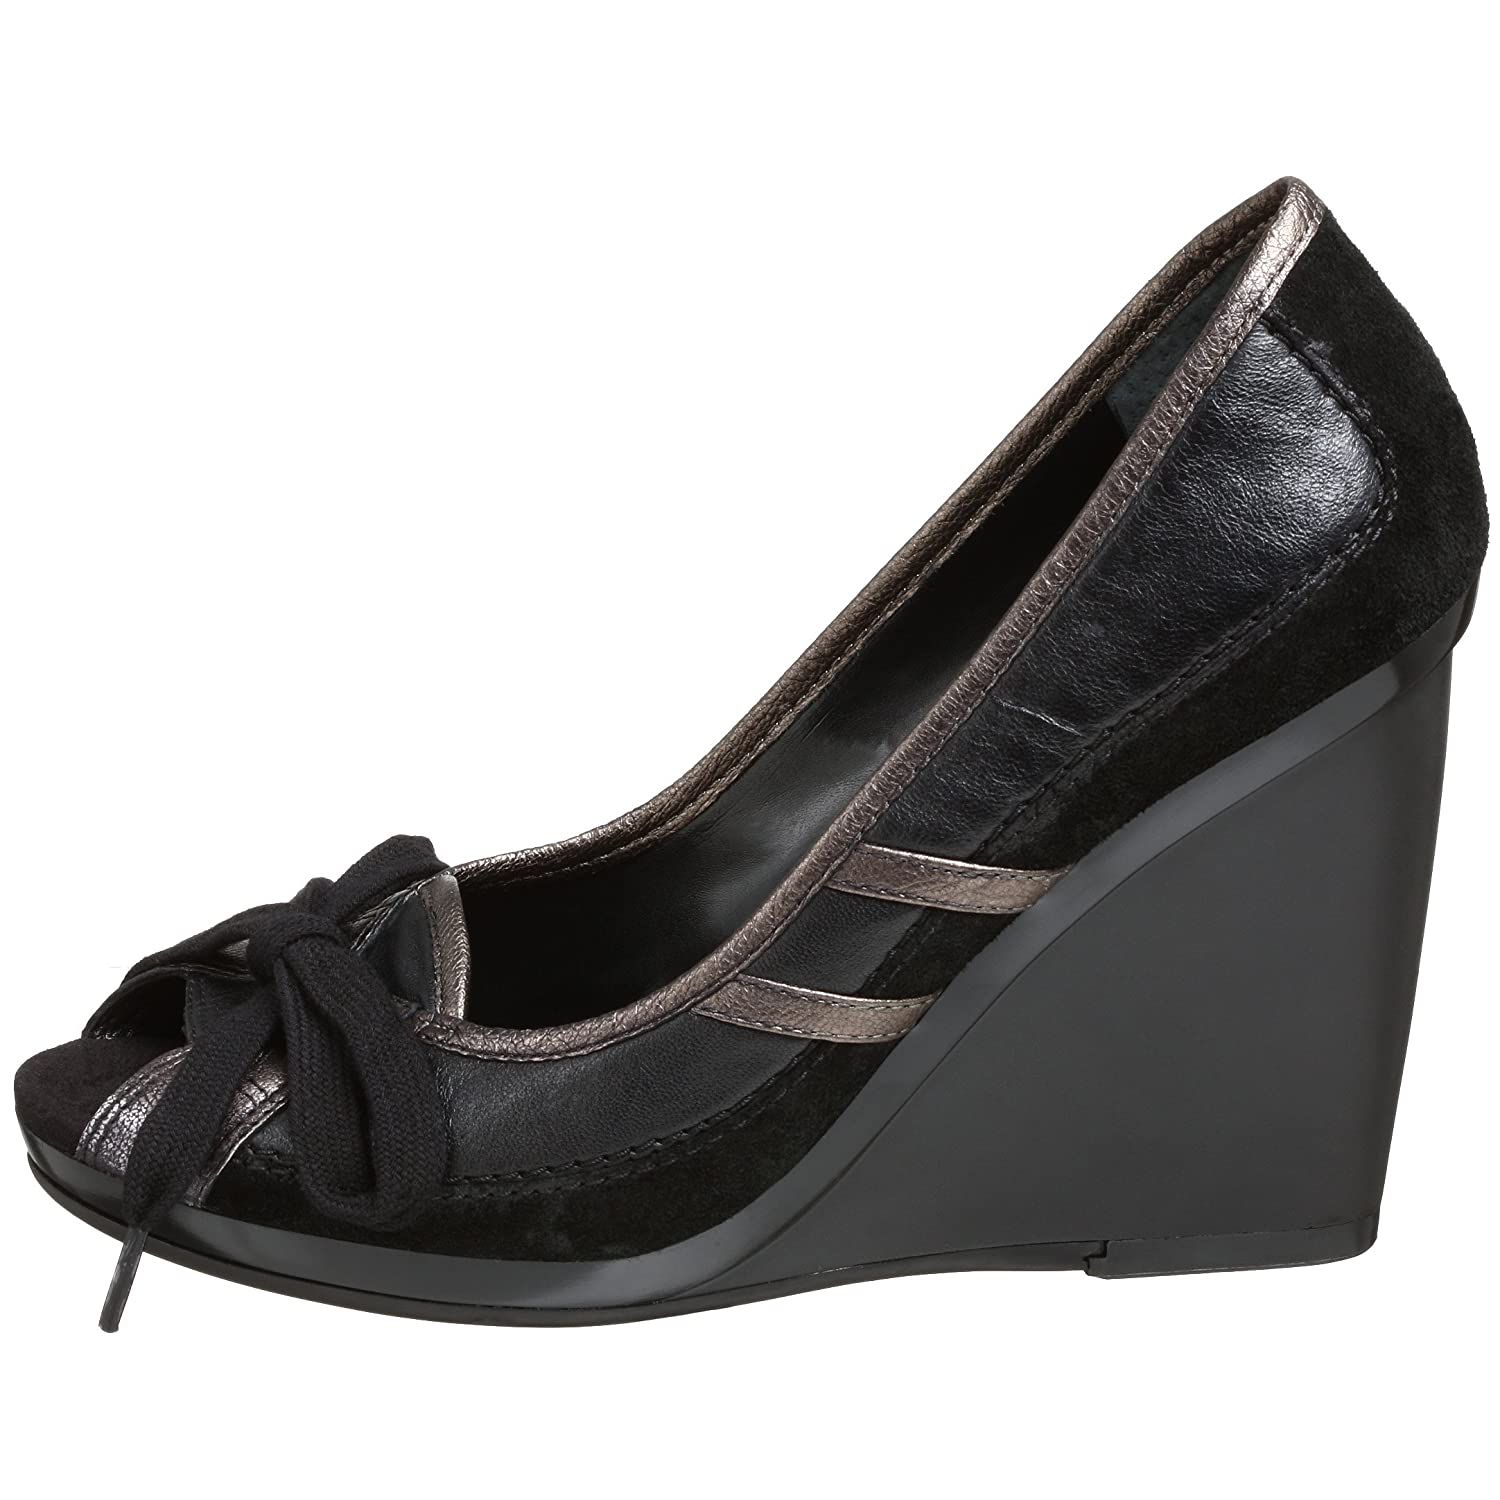 Warshay Peep Toe Platform Wedge from endless.com